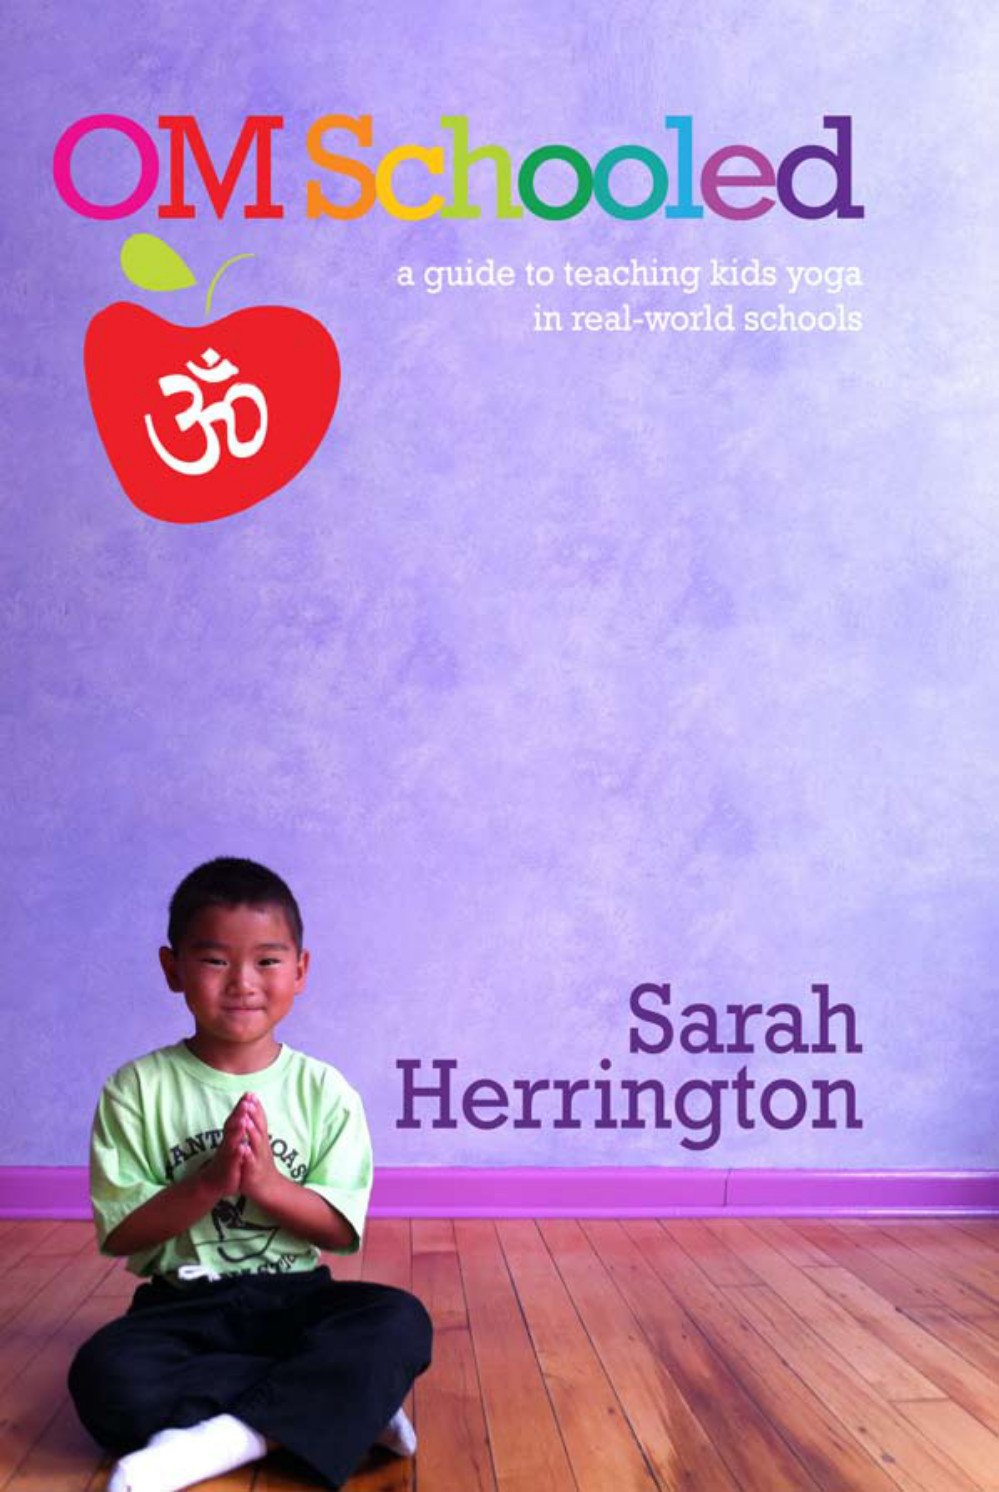 "OM Schooled the Book - ""What a comprehensive, informative, exciting book Ms Herrington has written on yoga for children!  Sarah's intuitive and educational sensitivity to the fight, flight and plight of challenges in the inner city NY schools is a testimonial to her brilliance as a teacher.  Her passion and caring is evident.  She sincerely inspires her students with a combination of learning, enjoying, playing and hope for our next generations to find a road map for the  future … peace, joy, and a new sense of life with yoga in their lives.  Long may she and her students reign in making a difference in the world!""-Marsha Wenig, founder and author of YogaKids ""Om Schooled is an informative and helpful book for anyone who would like to teach yoga to children in the classroom. Reading this book makes me wish yoga were taught to children in all schools everywhere! A wonderful resource.""-Sharon Salzberg, author of Real Happiness ""Om Schooled is the perfect manual for anyone who wants to start teaching yoga to kids.  This is not just a theoretical book—it is a step-by-step manual. Sarah Herrington shares the wisdom she has gained from her day-to-day experiences, for many years, teaching all ages of children yoga in the New York School system.""–Sharon Gannon, co-creator of the Jivamukti Yoga method ""Om Schooled, the book, is a treasure-trove of information for school-based professionals and yoga teachers, across the board.  I love Sarah's eloquent expression of her own personal journey to finding her yoga mat to her unique experience teaching full-time school yoga.  The engaging voice of the author, photos of kids and quotes by children fill the book with love and inspiration ~ truly, not to be missed.""-Jodi Komitor, Founder, Next Generation Yoga"